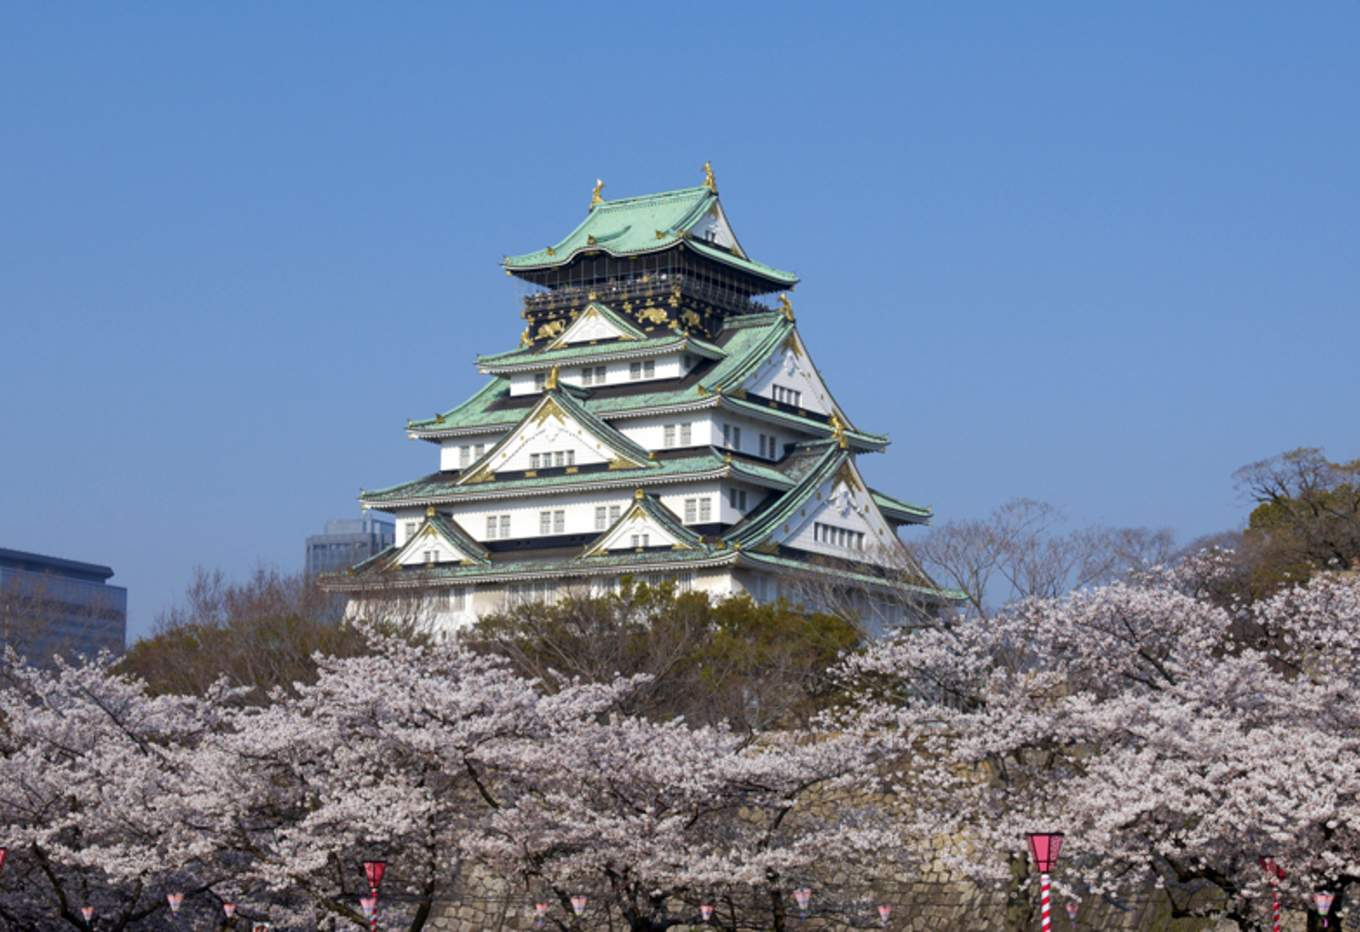 Osaka Castle Tower is a representative building in Osaka, and it is beautiful with the flower season. (Image taken from gazoo.com)